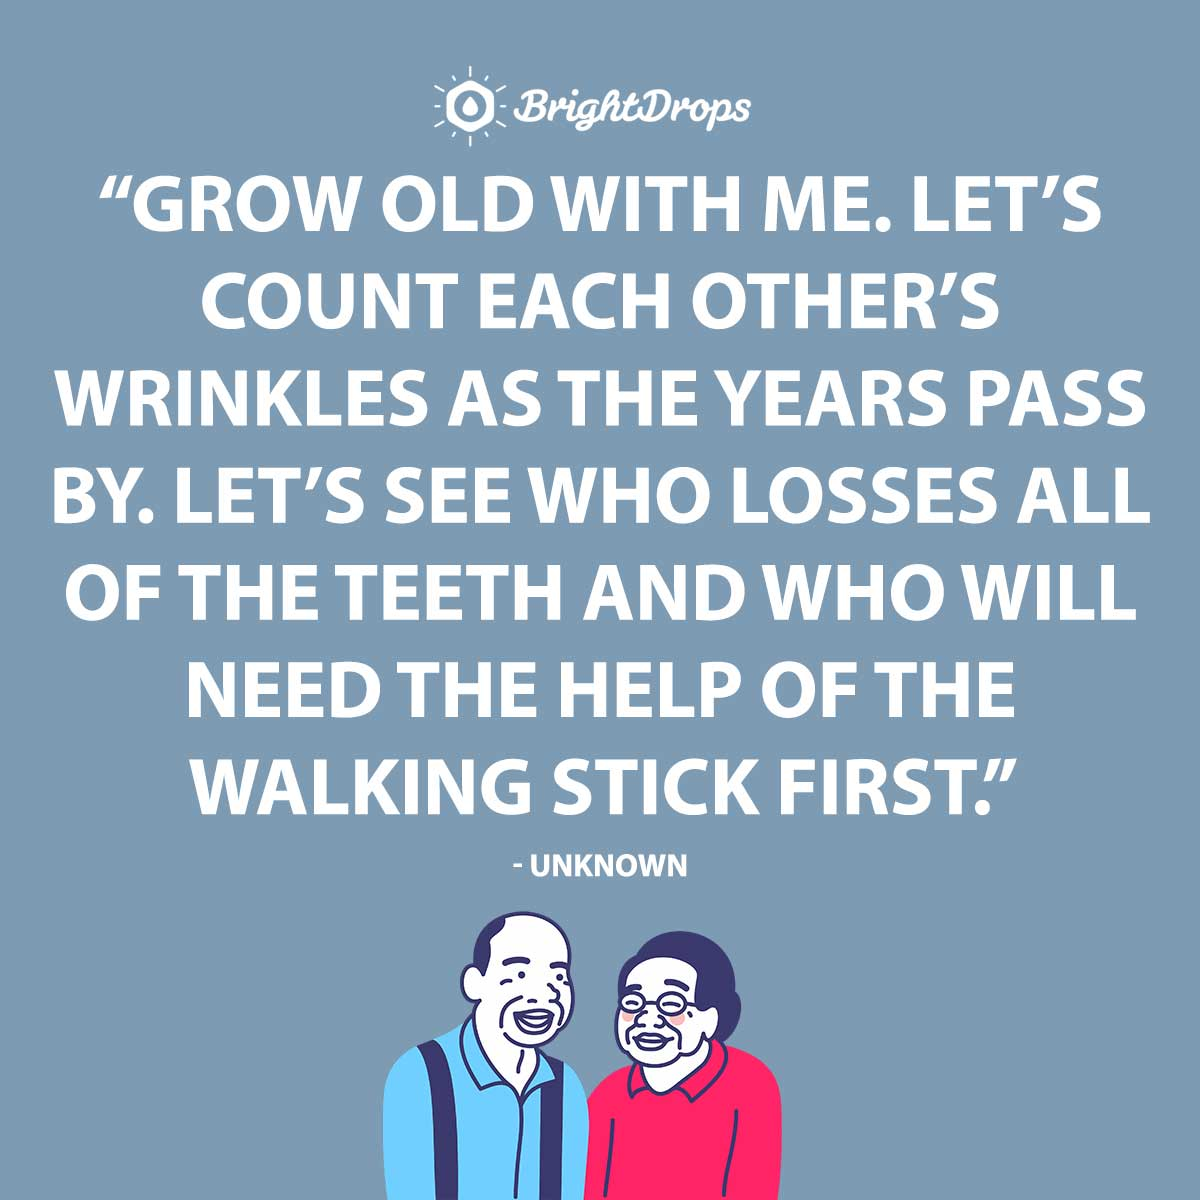 Grow old with me. Let's count each other's wrinkles as the years pass by. Let's see who losses all of the teeth and who will need the help of the walking stick first. - Unknown